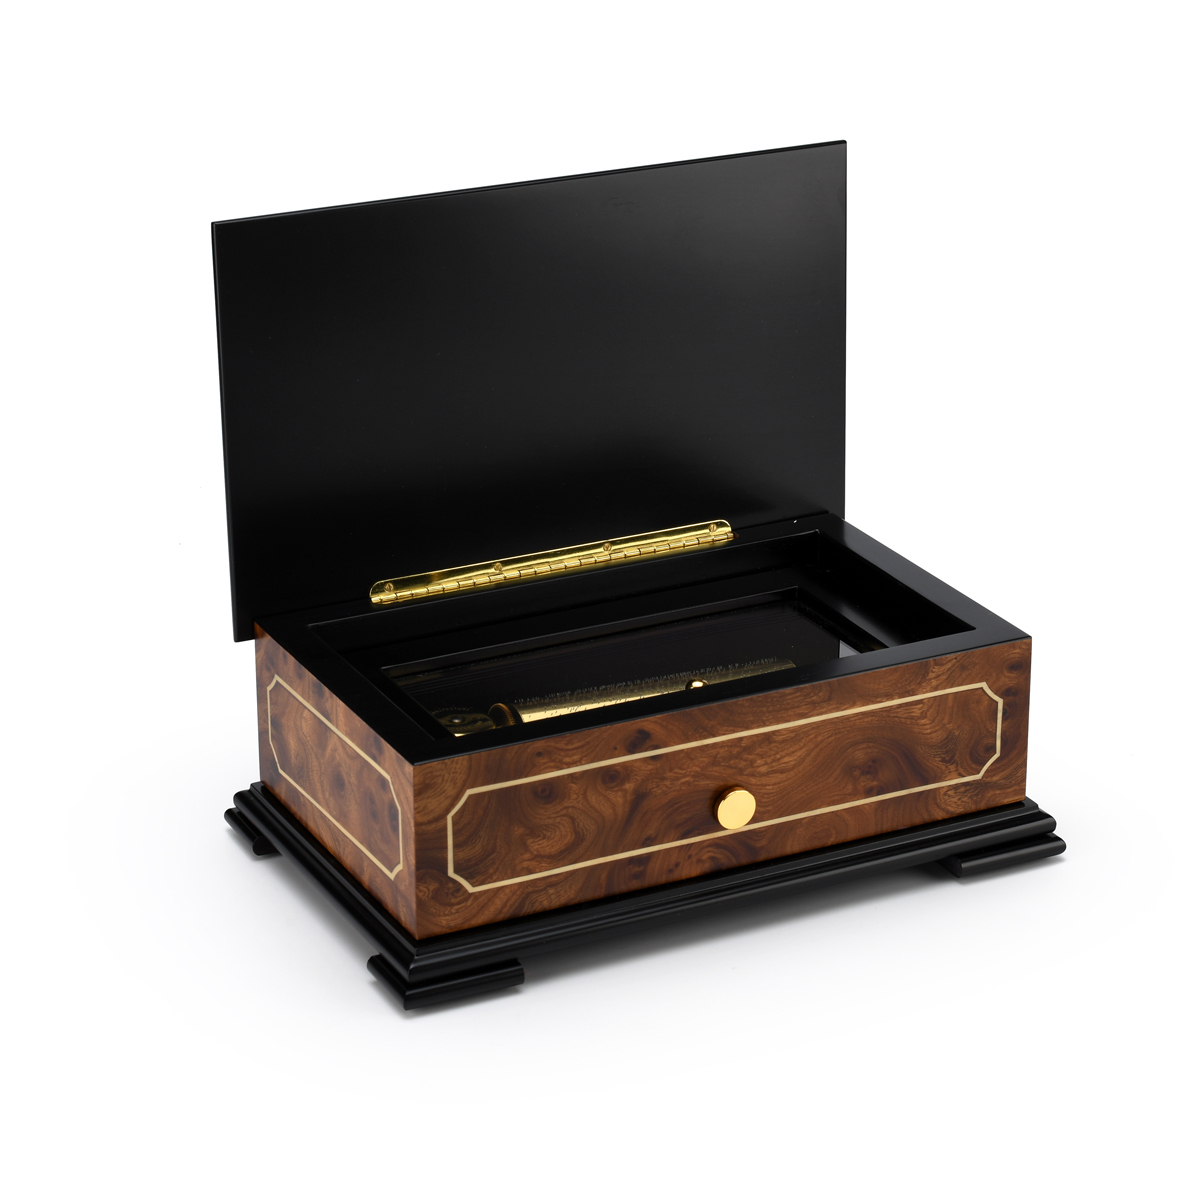 Sophisticated Swiss 72 Note Classic Style with Framed Panel Inlay Grand Music Box